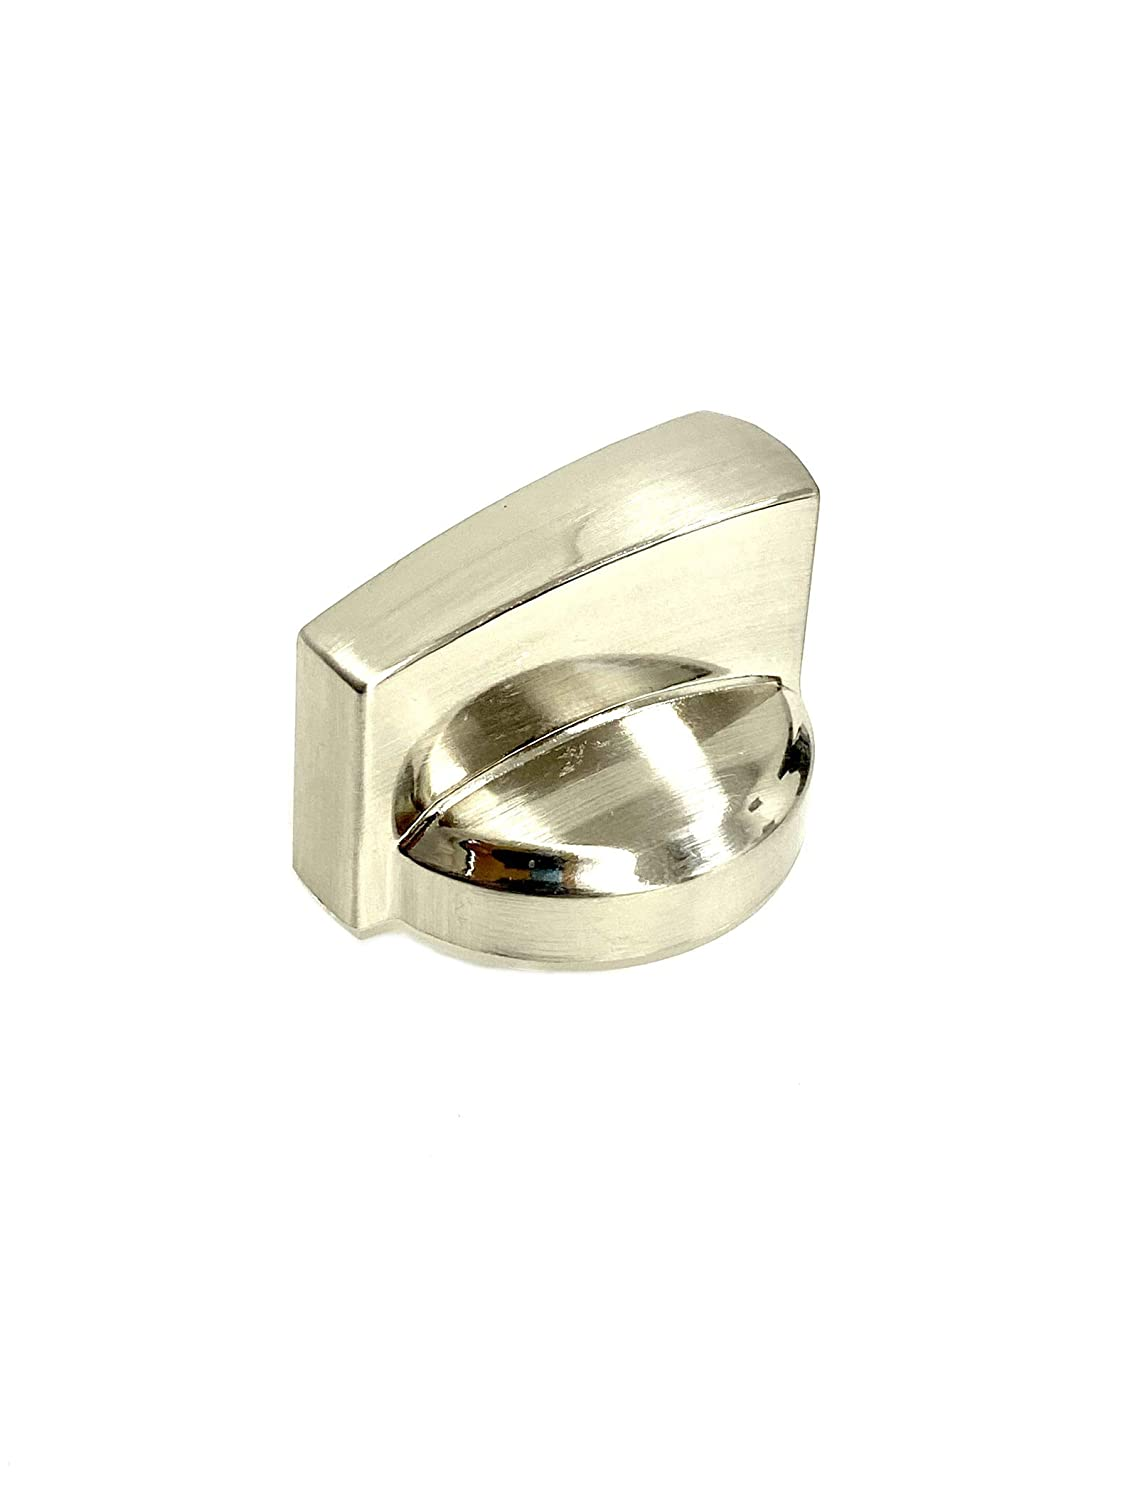 WB03X25796 Knob Replacement for GE Stove//Range AP5986232 PS11721433 WB03T10326